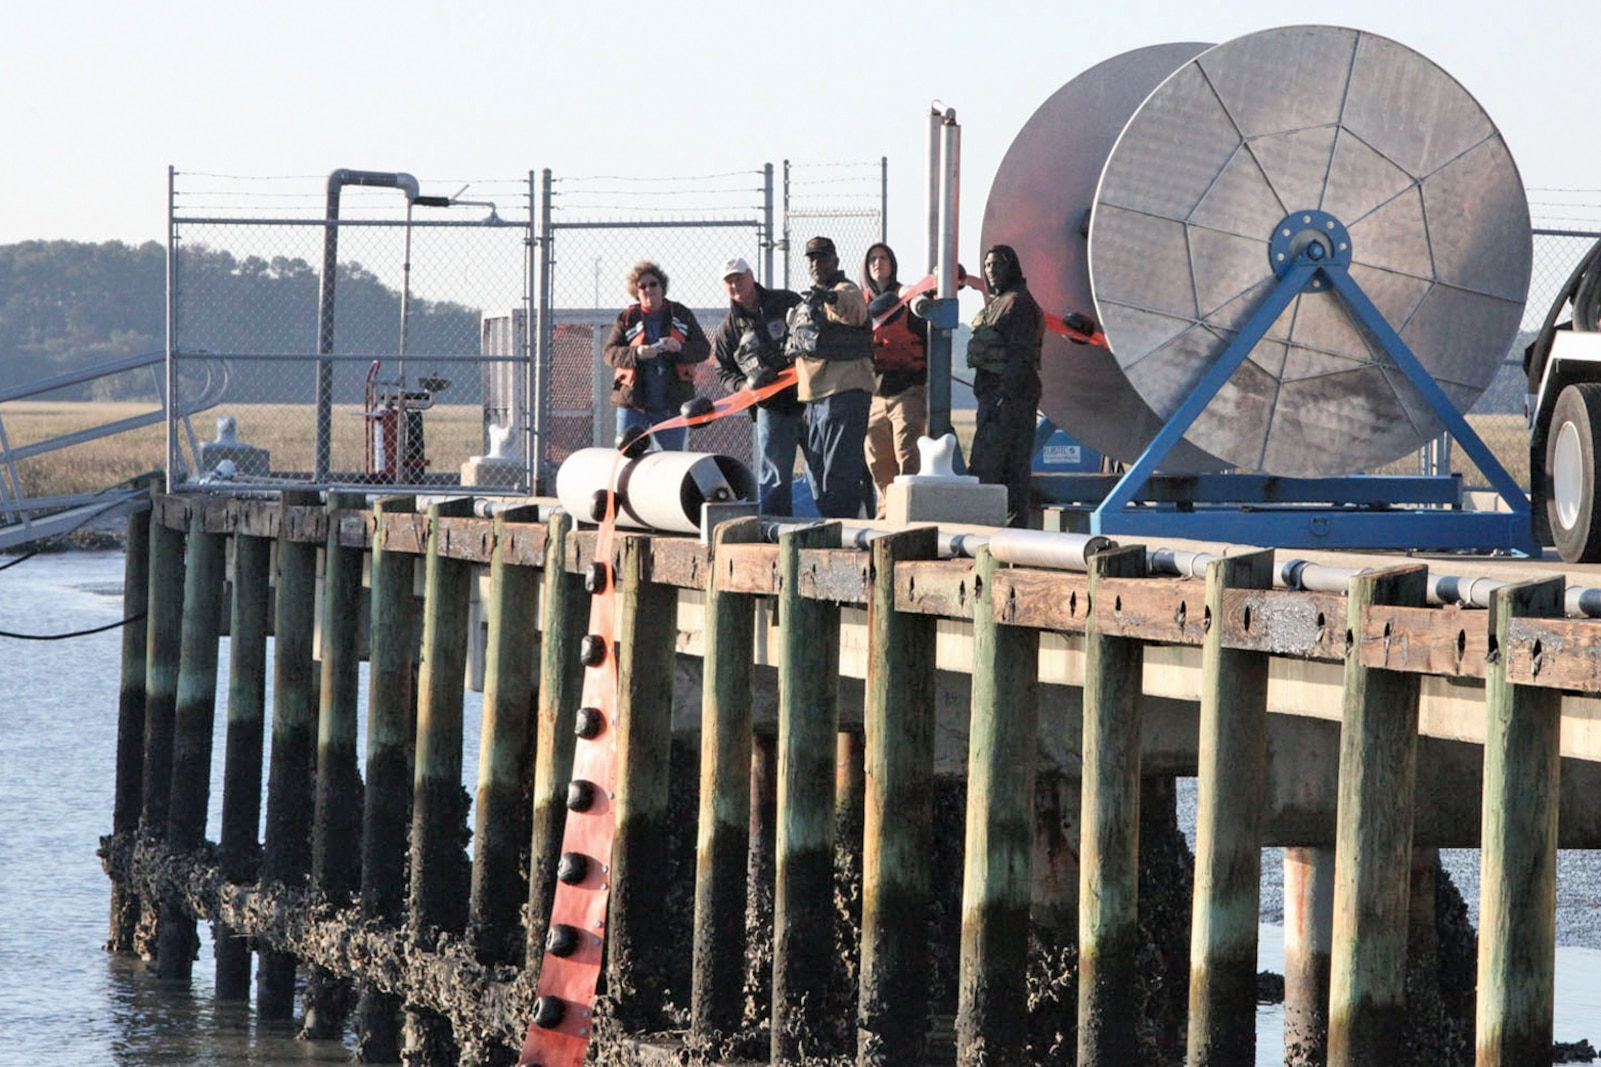 MARINE CORPS AIR STATION BEAUFORT, S.C. - Members of the spill management team deploy a hard boom into the water at the Air Station fuel pier Nov. 2. The spill management team and facility response team work together to capture hazardous material in water.